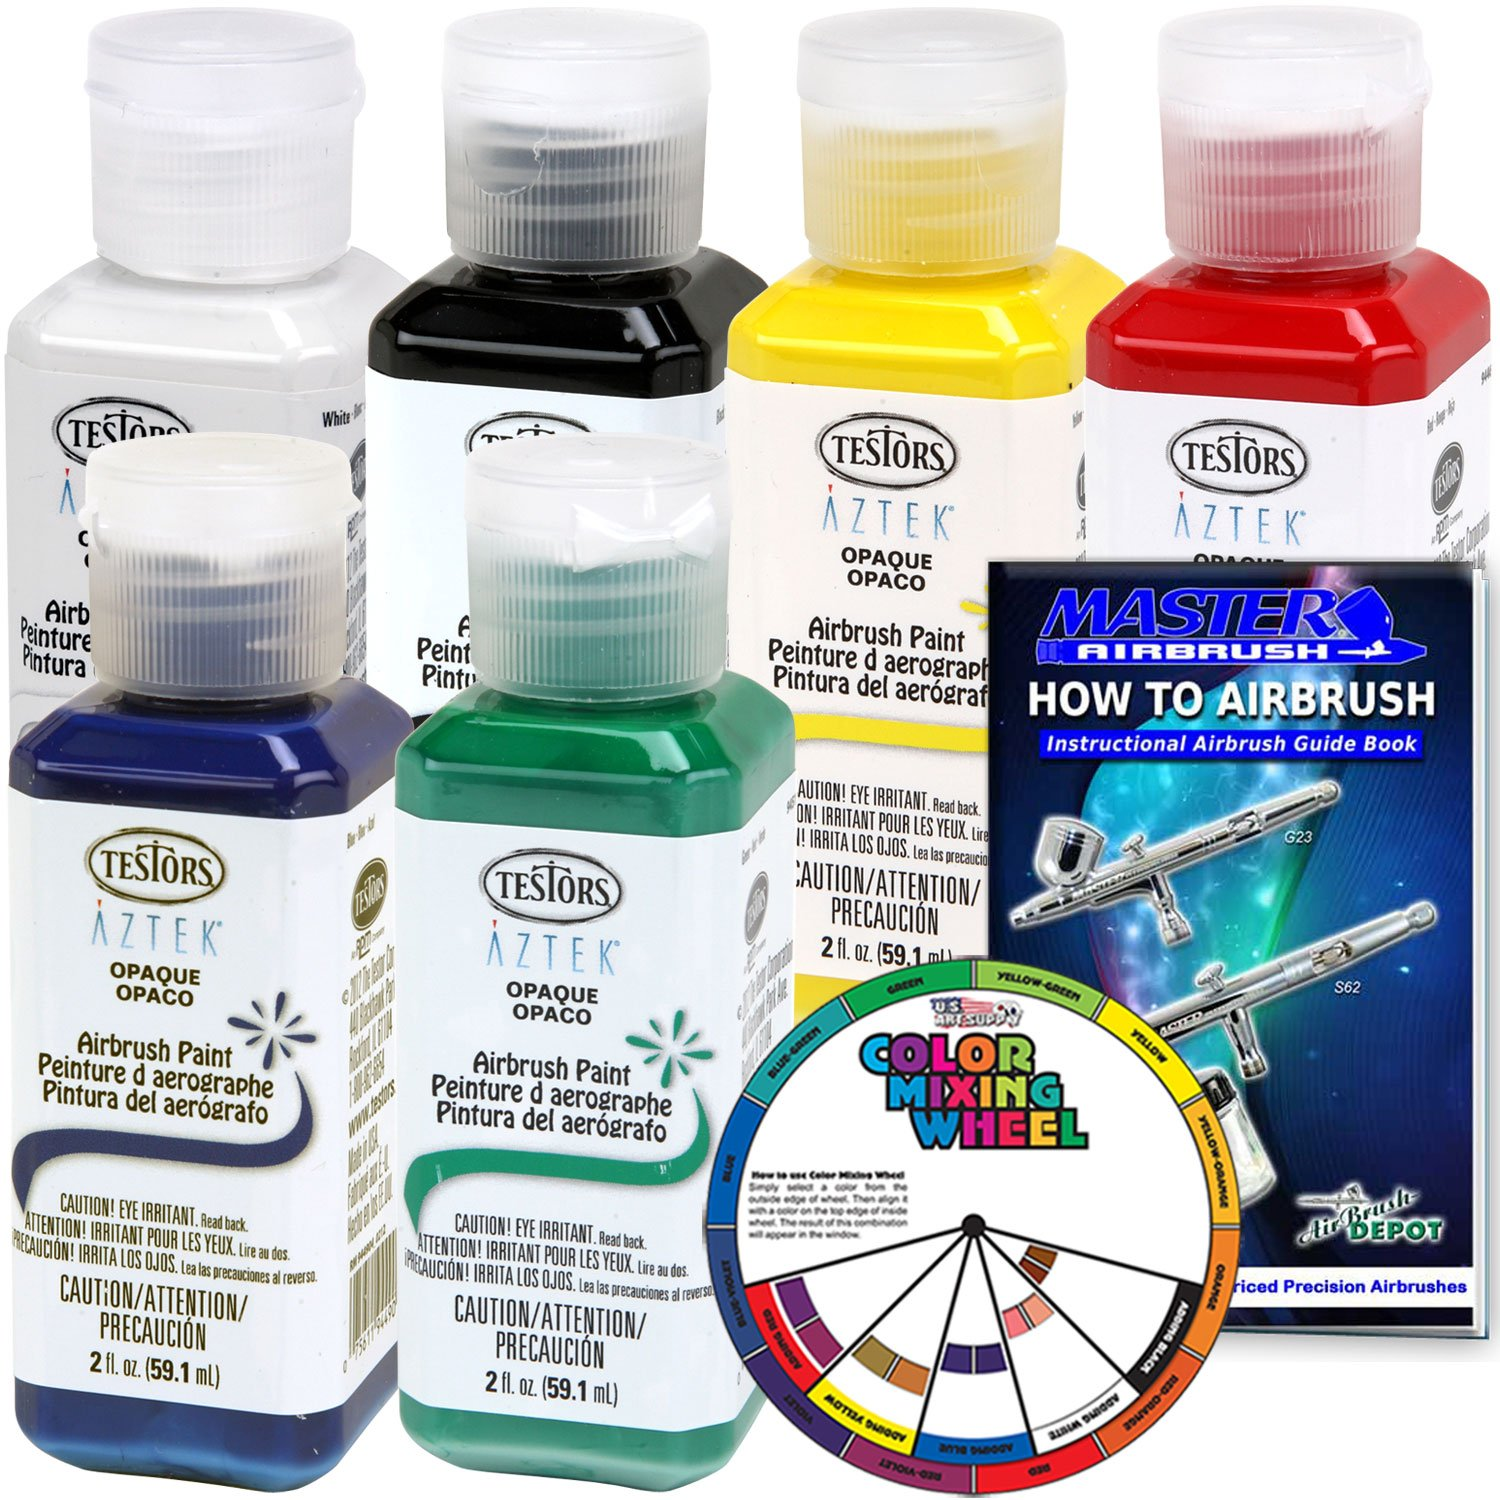 6 Color - Testors Aztek Premium Opaque Semi-Gloss Acrylic Airbrush Paint Set with Color Mixing Wheel and How to Airbrush Manual